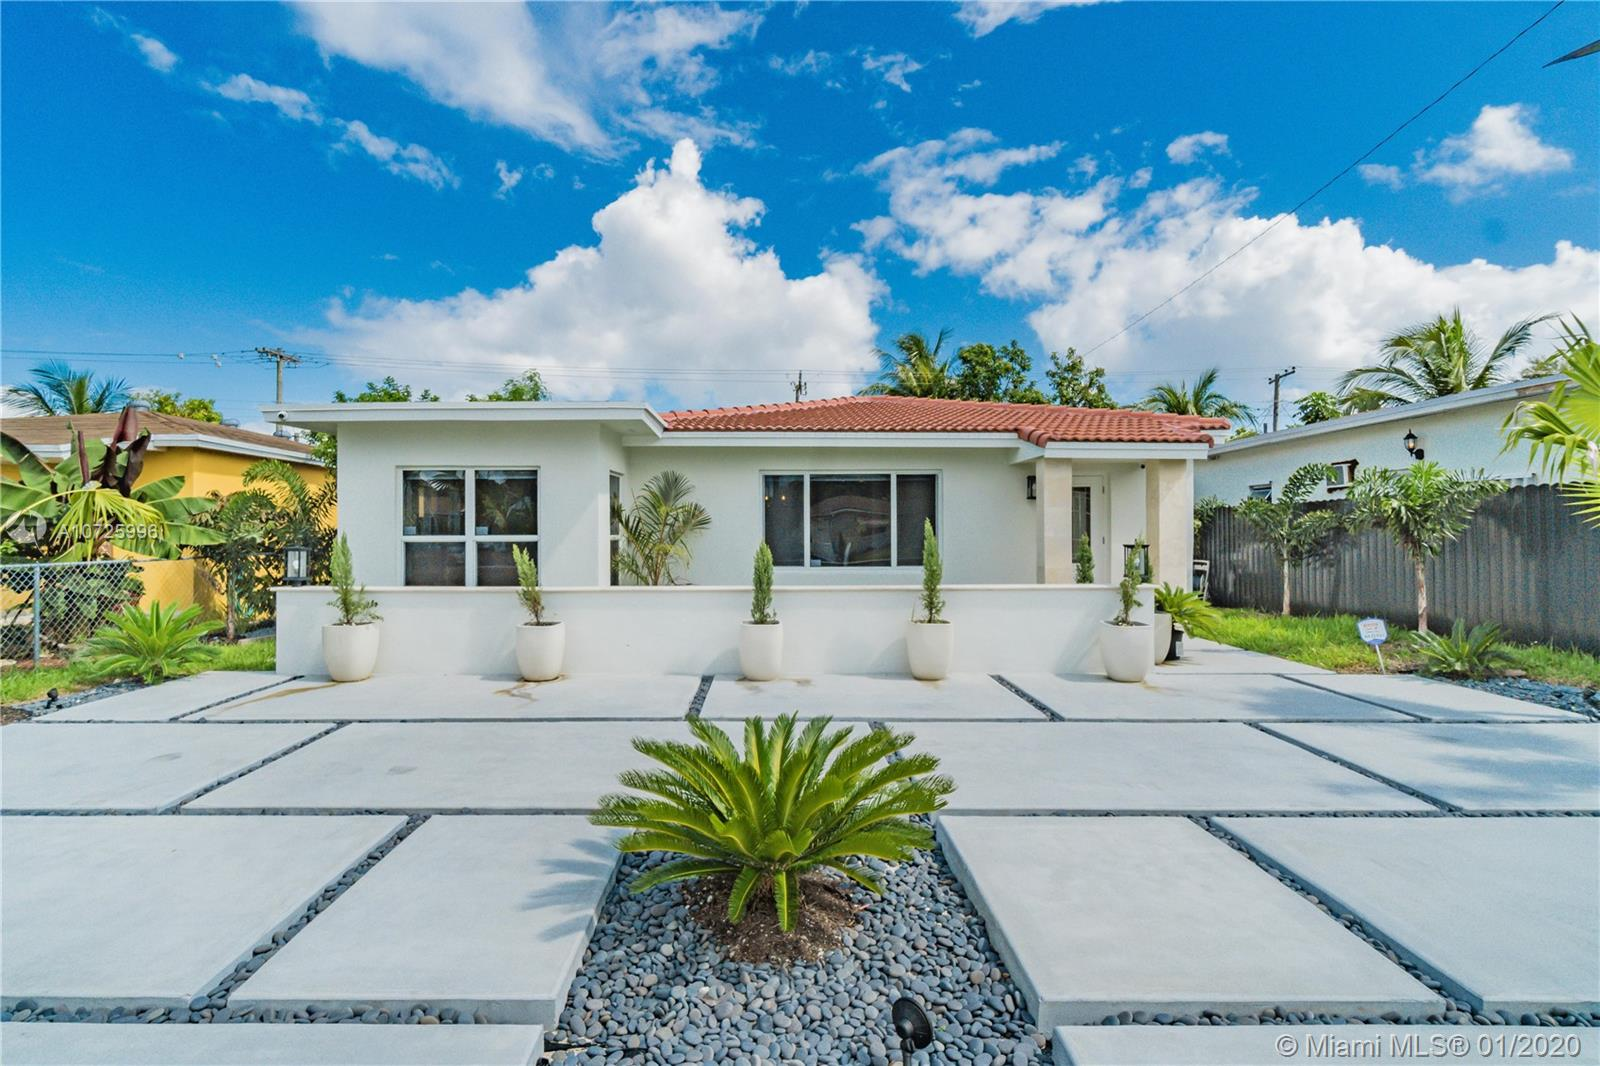 1731 NE 172nd St, Miami Shores, Florida